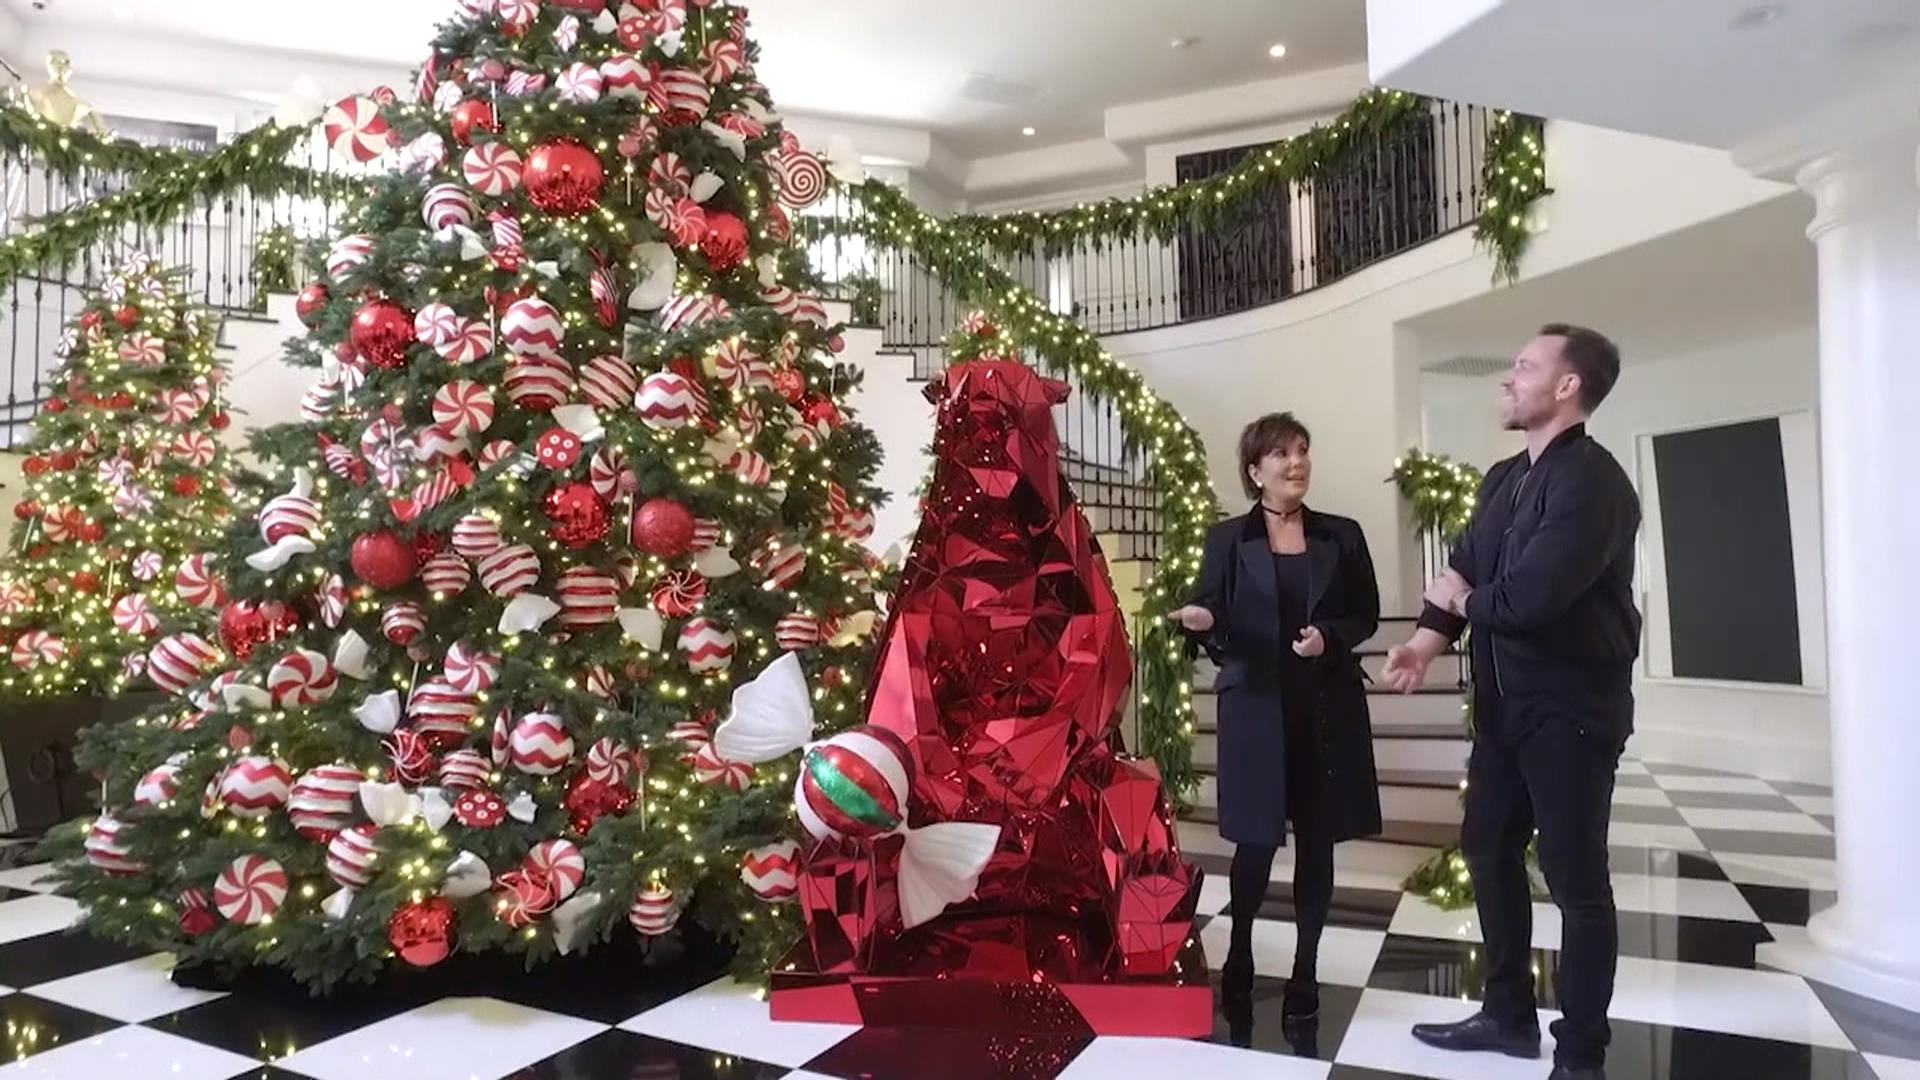 Kris Jenner Christmas Decorations 2016